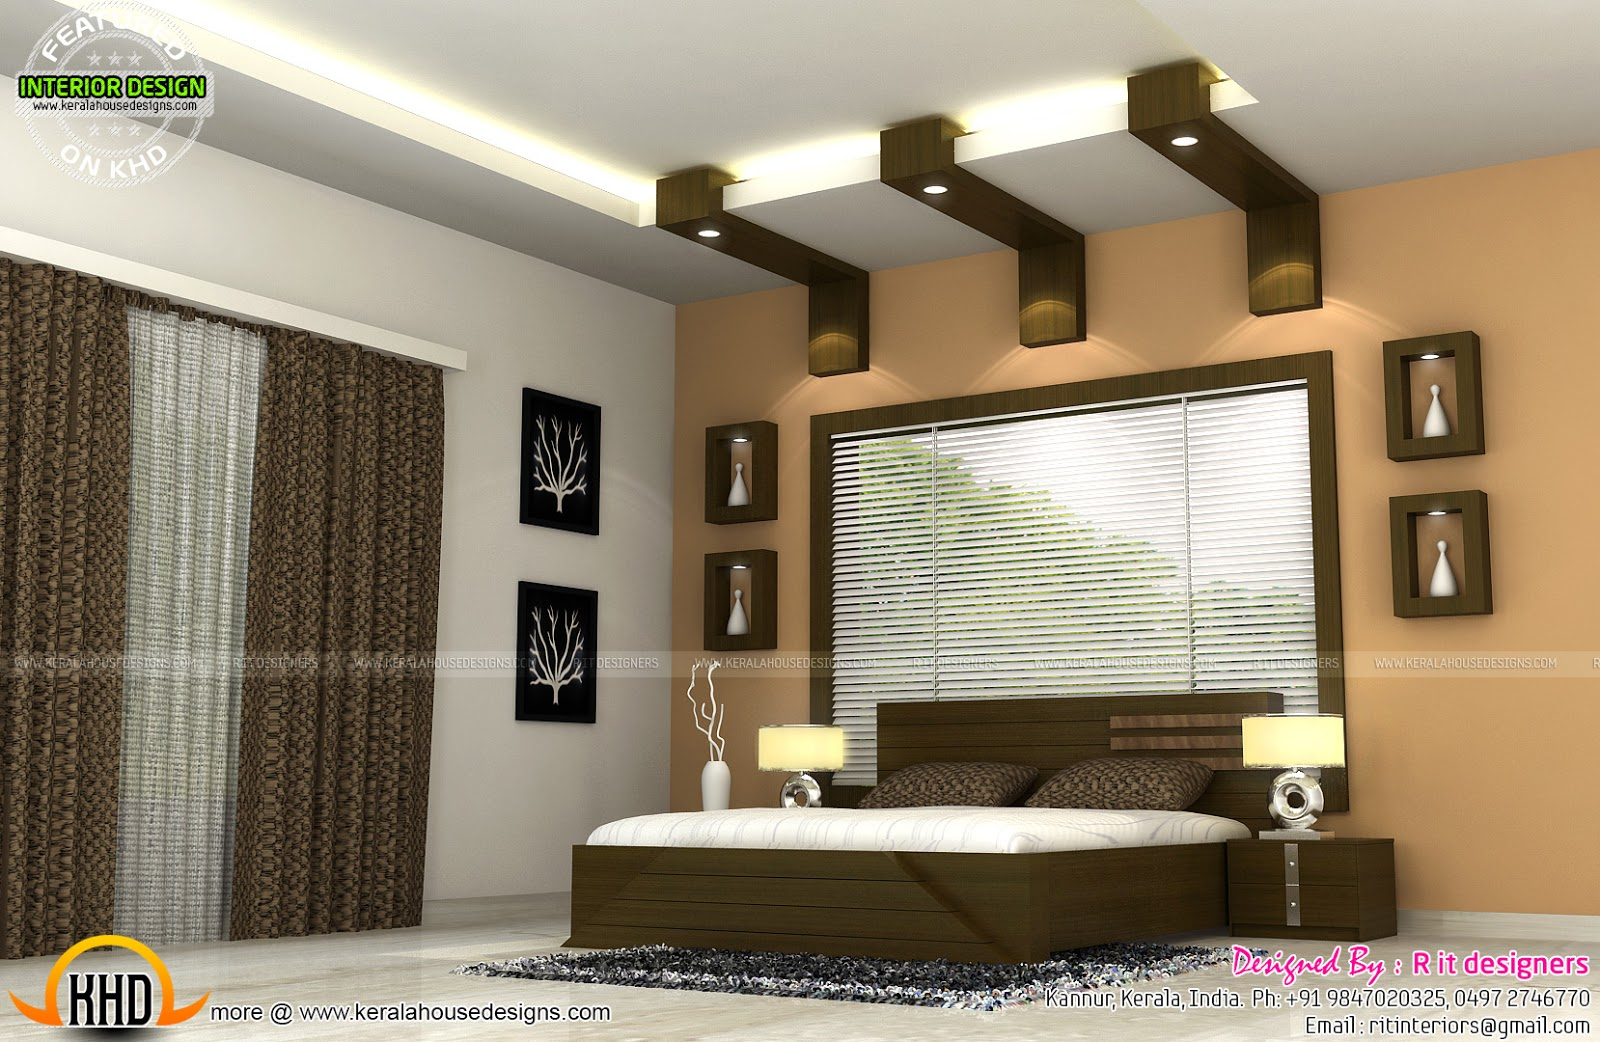 Interiors of bedrooms and kitchen kerala home design and for Plan of bedroom designs